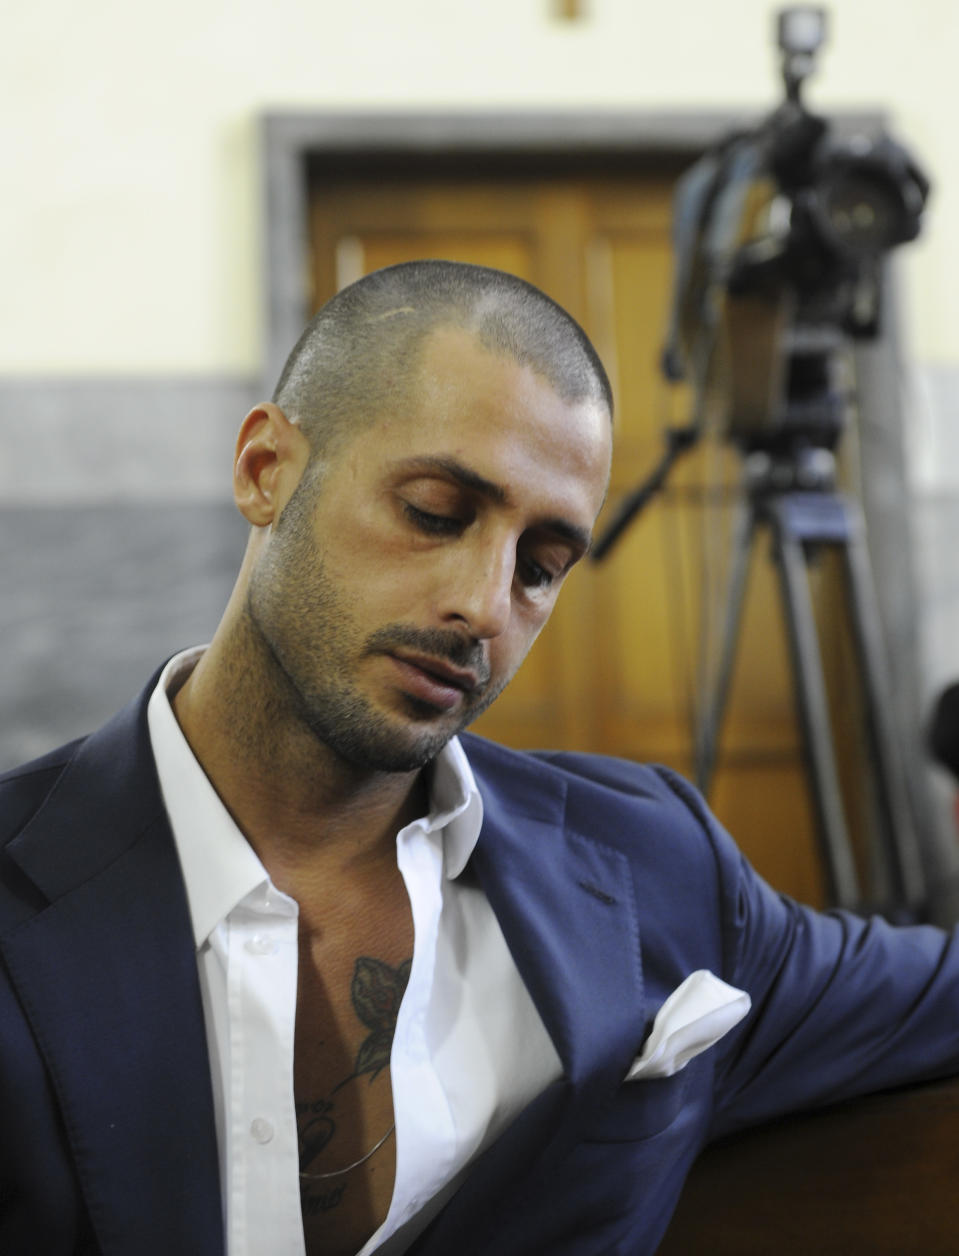 Fabrizio Corona (AP Photo/Antonio Calanni)